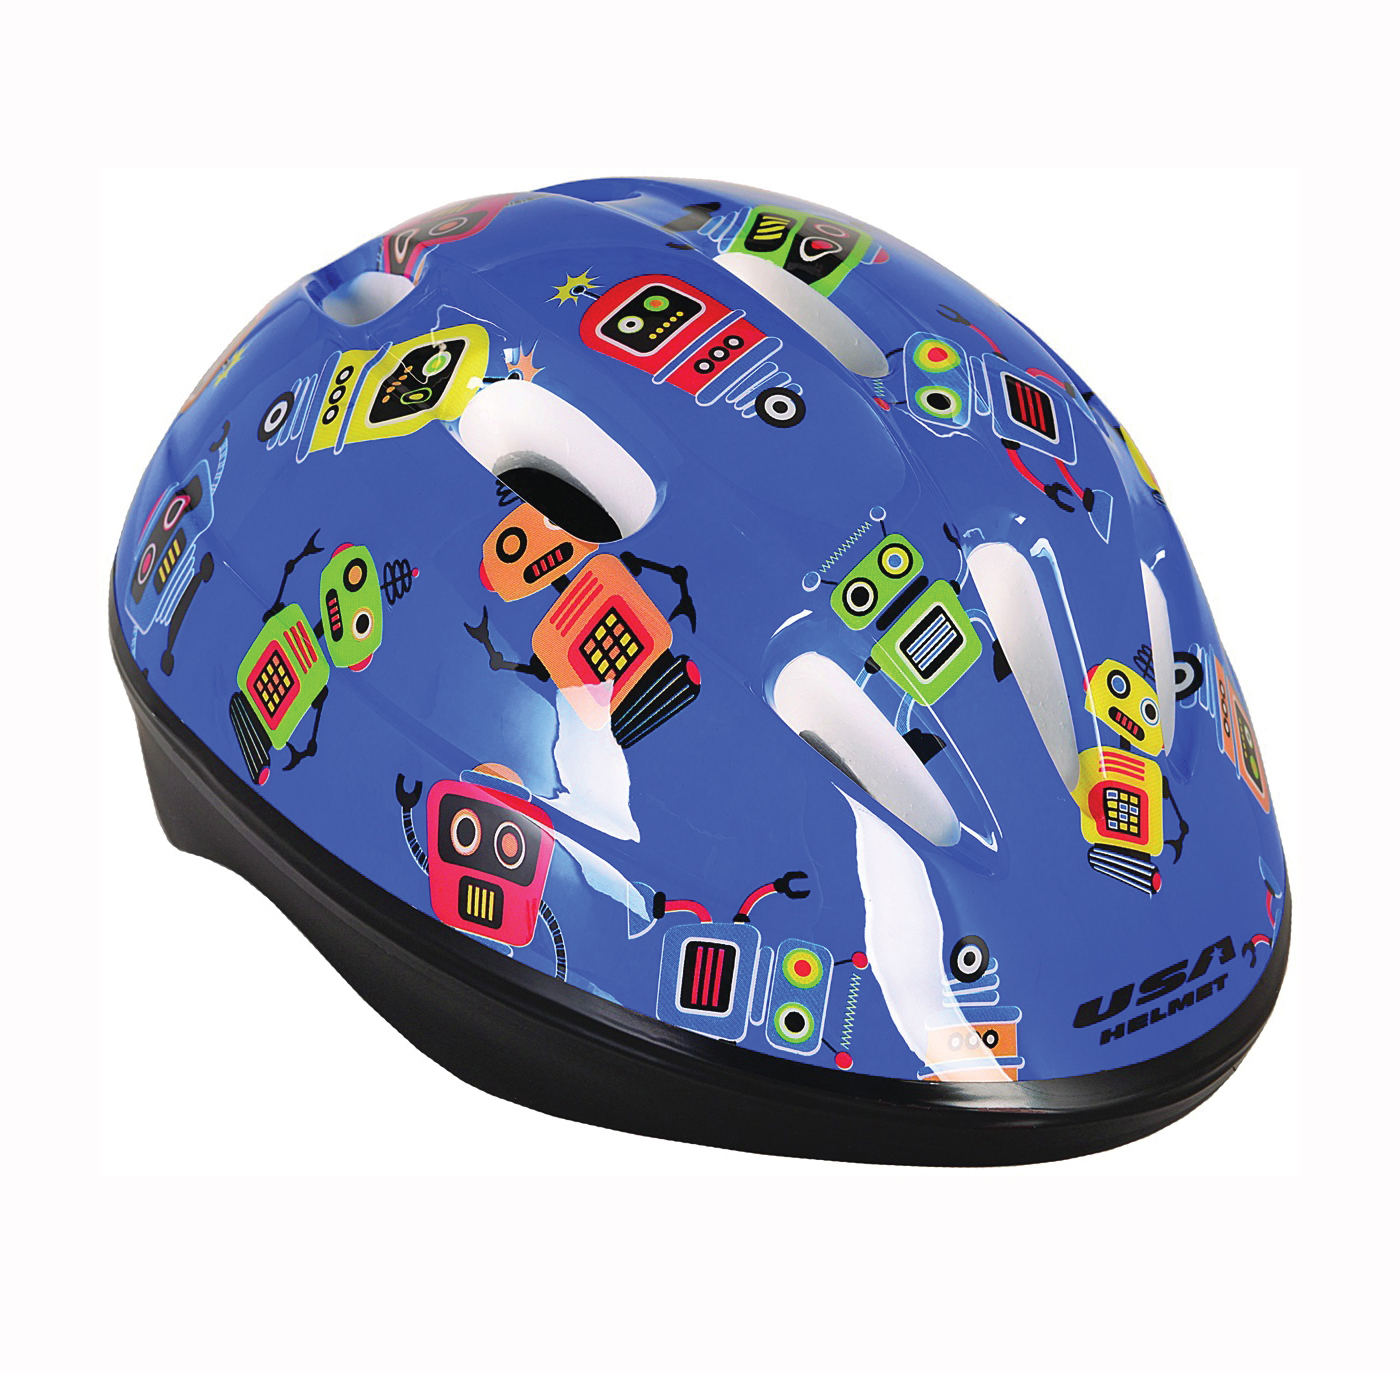 Picture of Kent 64102 Toddler Helmet, Blue, For: 19 to 21-1/2 in Head Size and Toddlers